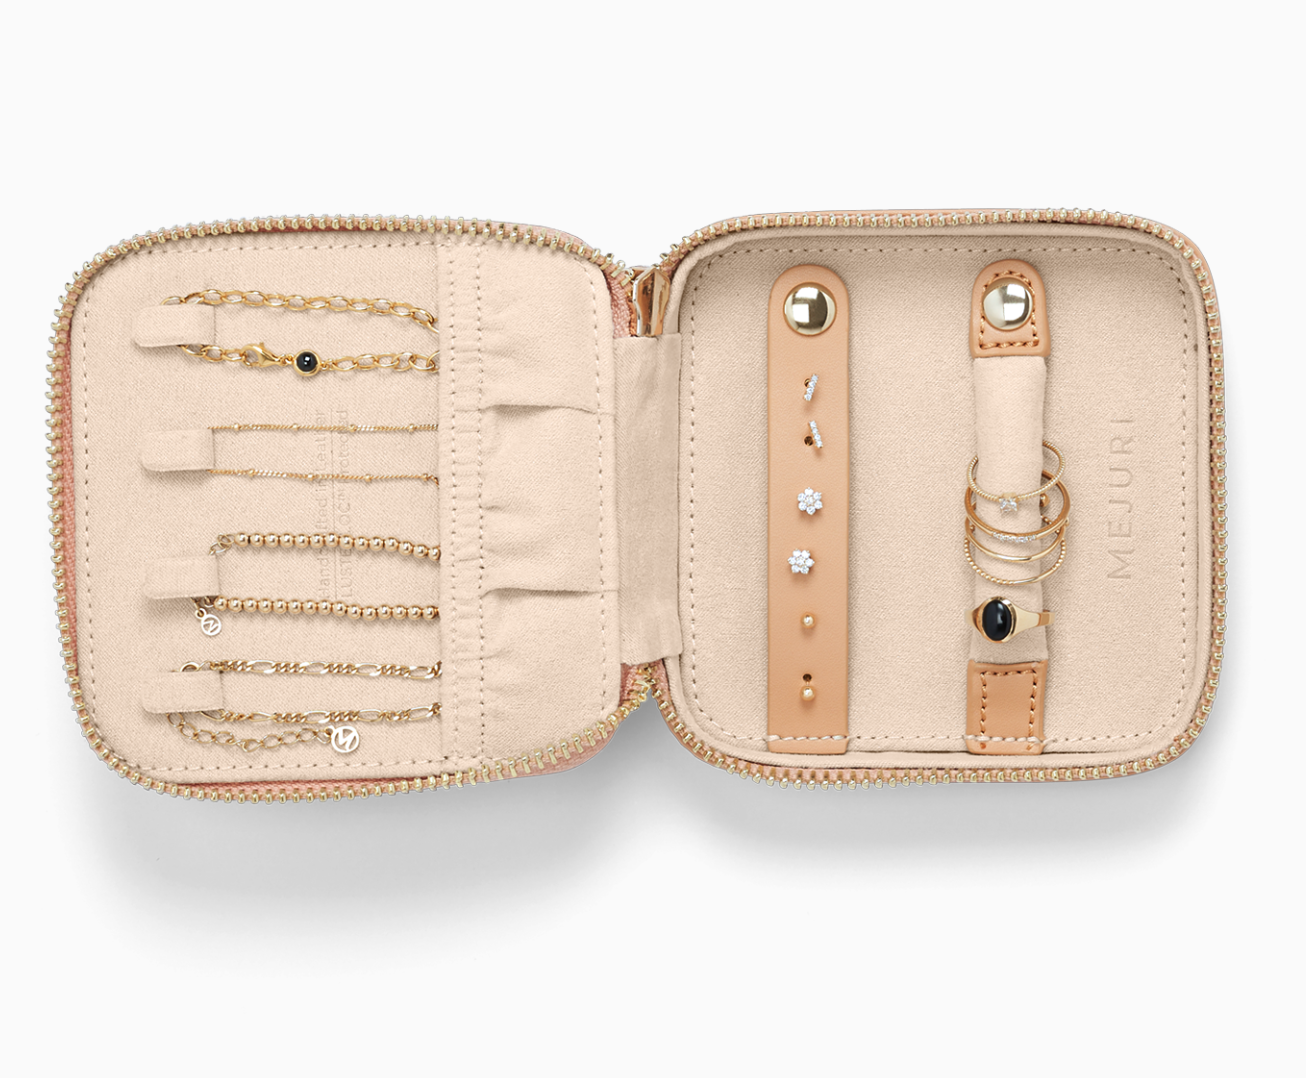 Travel Jewelry Case - A must-have!